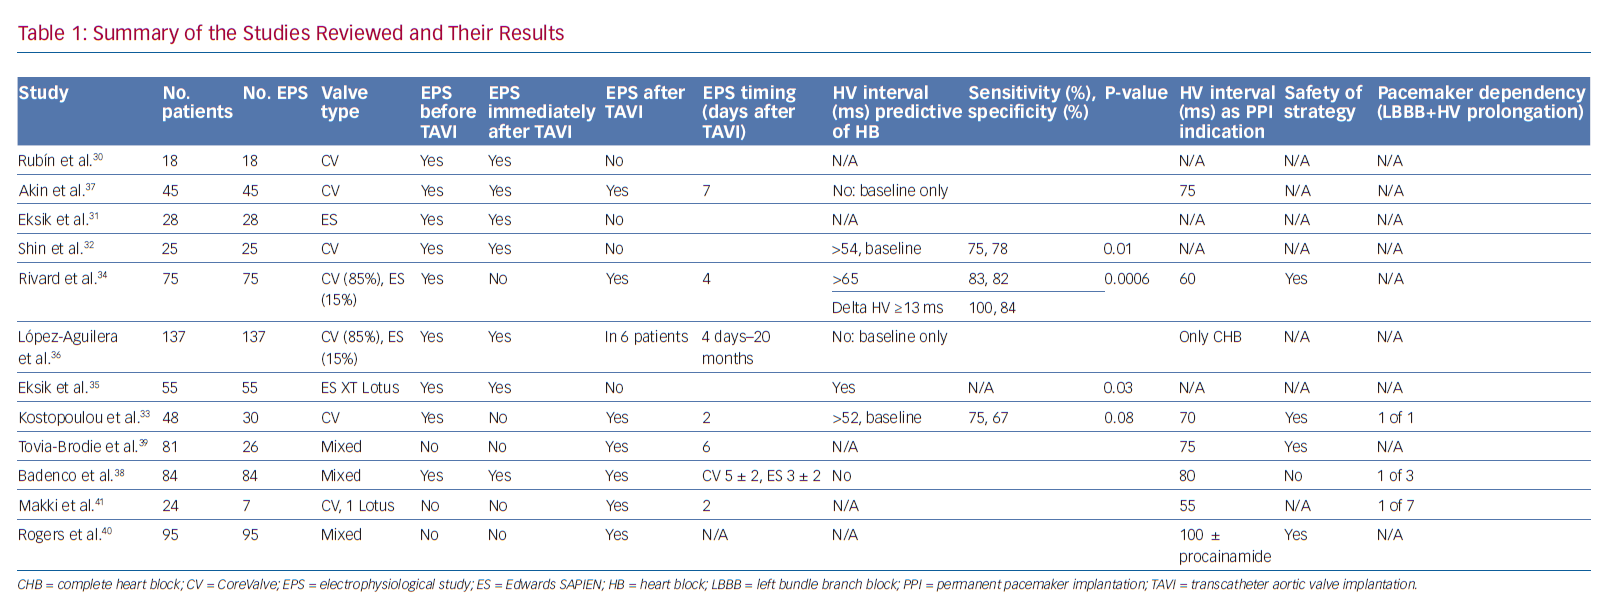 Summary of the Studies Reviewed and Their Results